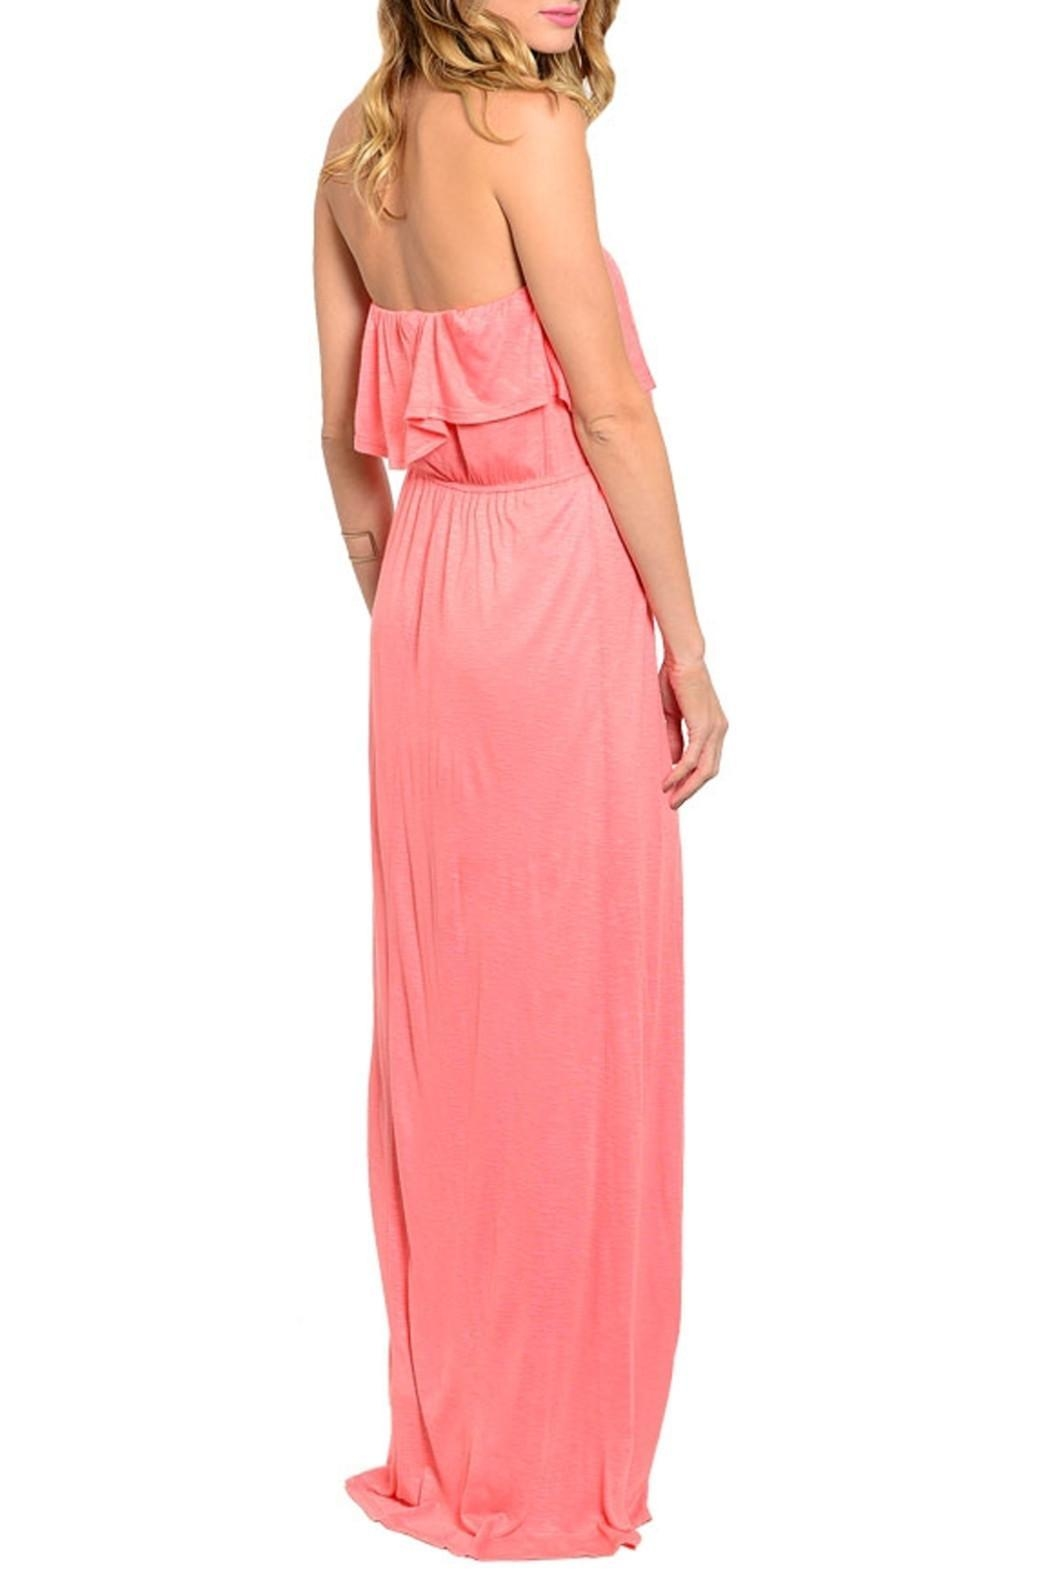 Joyce Coral Strapless Dress - Front Full Image